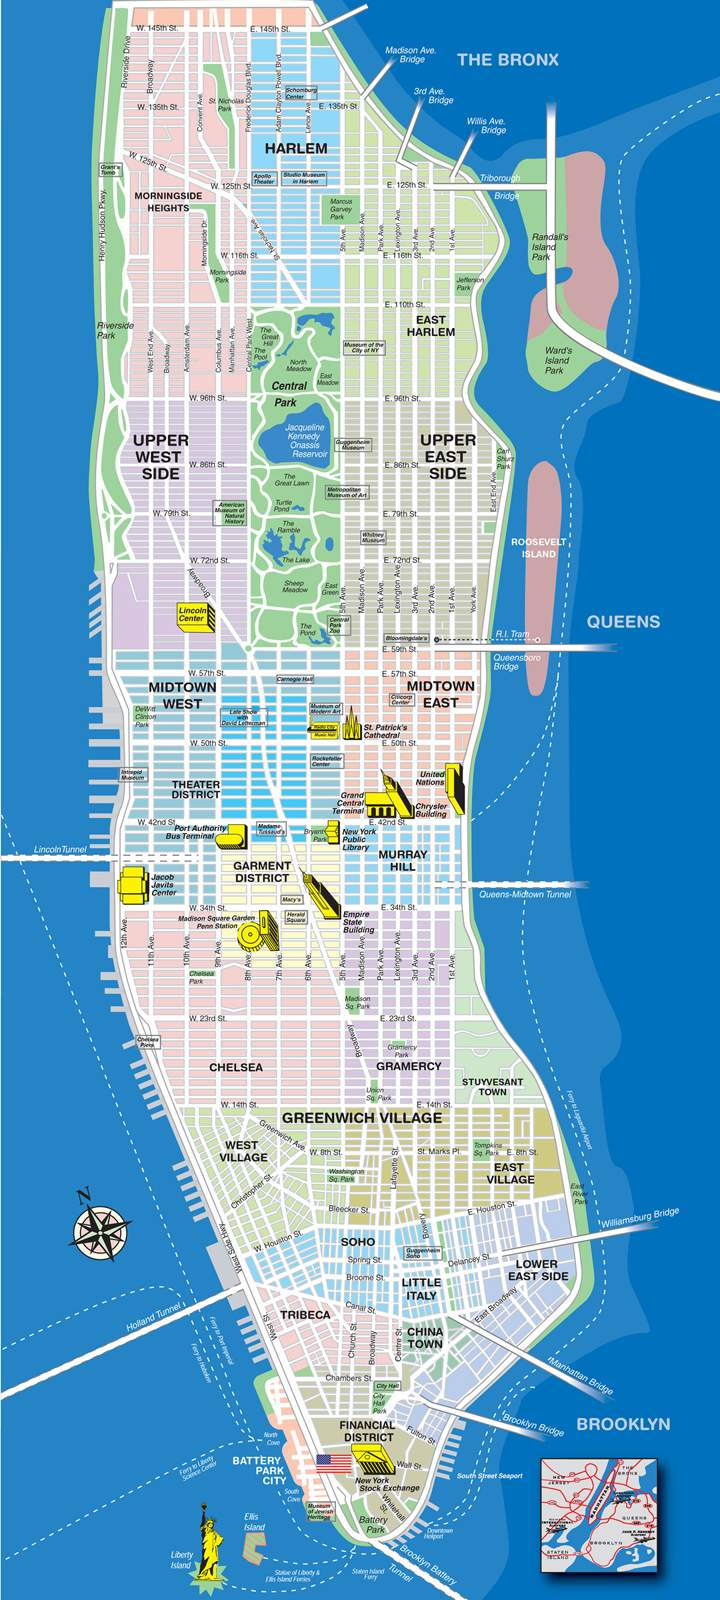 Large Manhattan Maps for Free Download and Print | High ... on manhattan tourist map, manhattan south map, manhattan hotel map, manhattan on us map, manhattan nebraska map, manhattan new york subway, nyc map, new city street map, manhattan rooftop bars in december, midtown manhattan map, manhattan nd map, manhattan yonkers map, manhattan island, manhattan tx map, world trade center on a map, lower manhattan map, manhattan street map, 1920s manhattan map, manhattan los angeles map, manhattan avenues and streets,